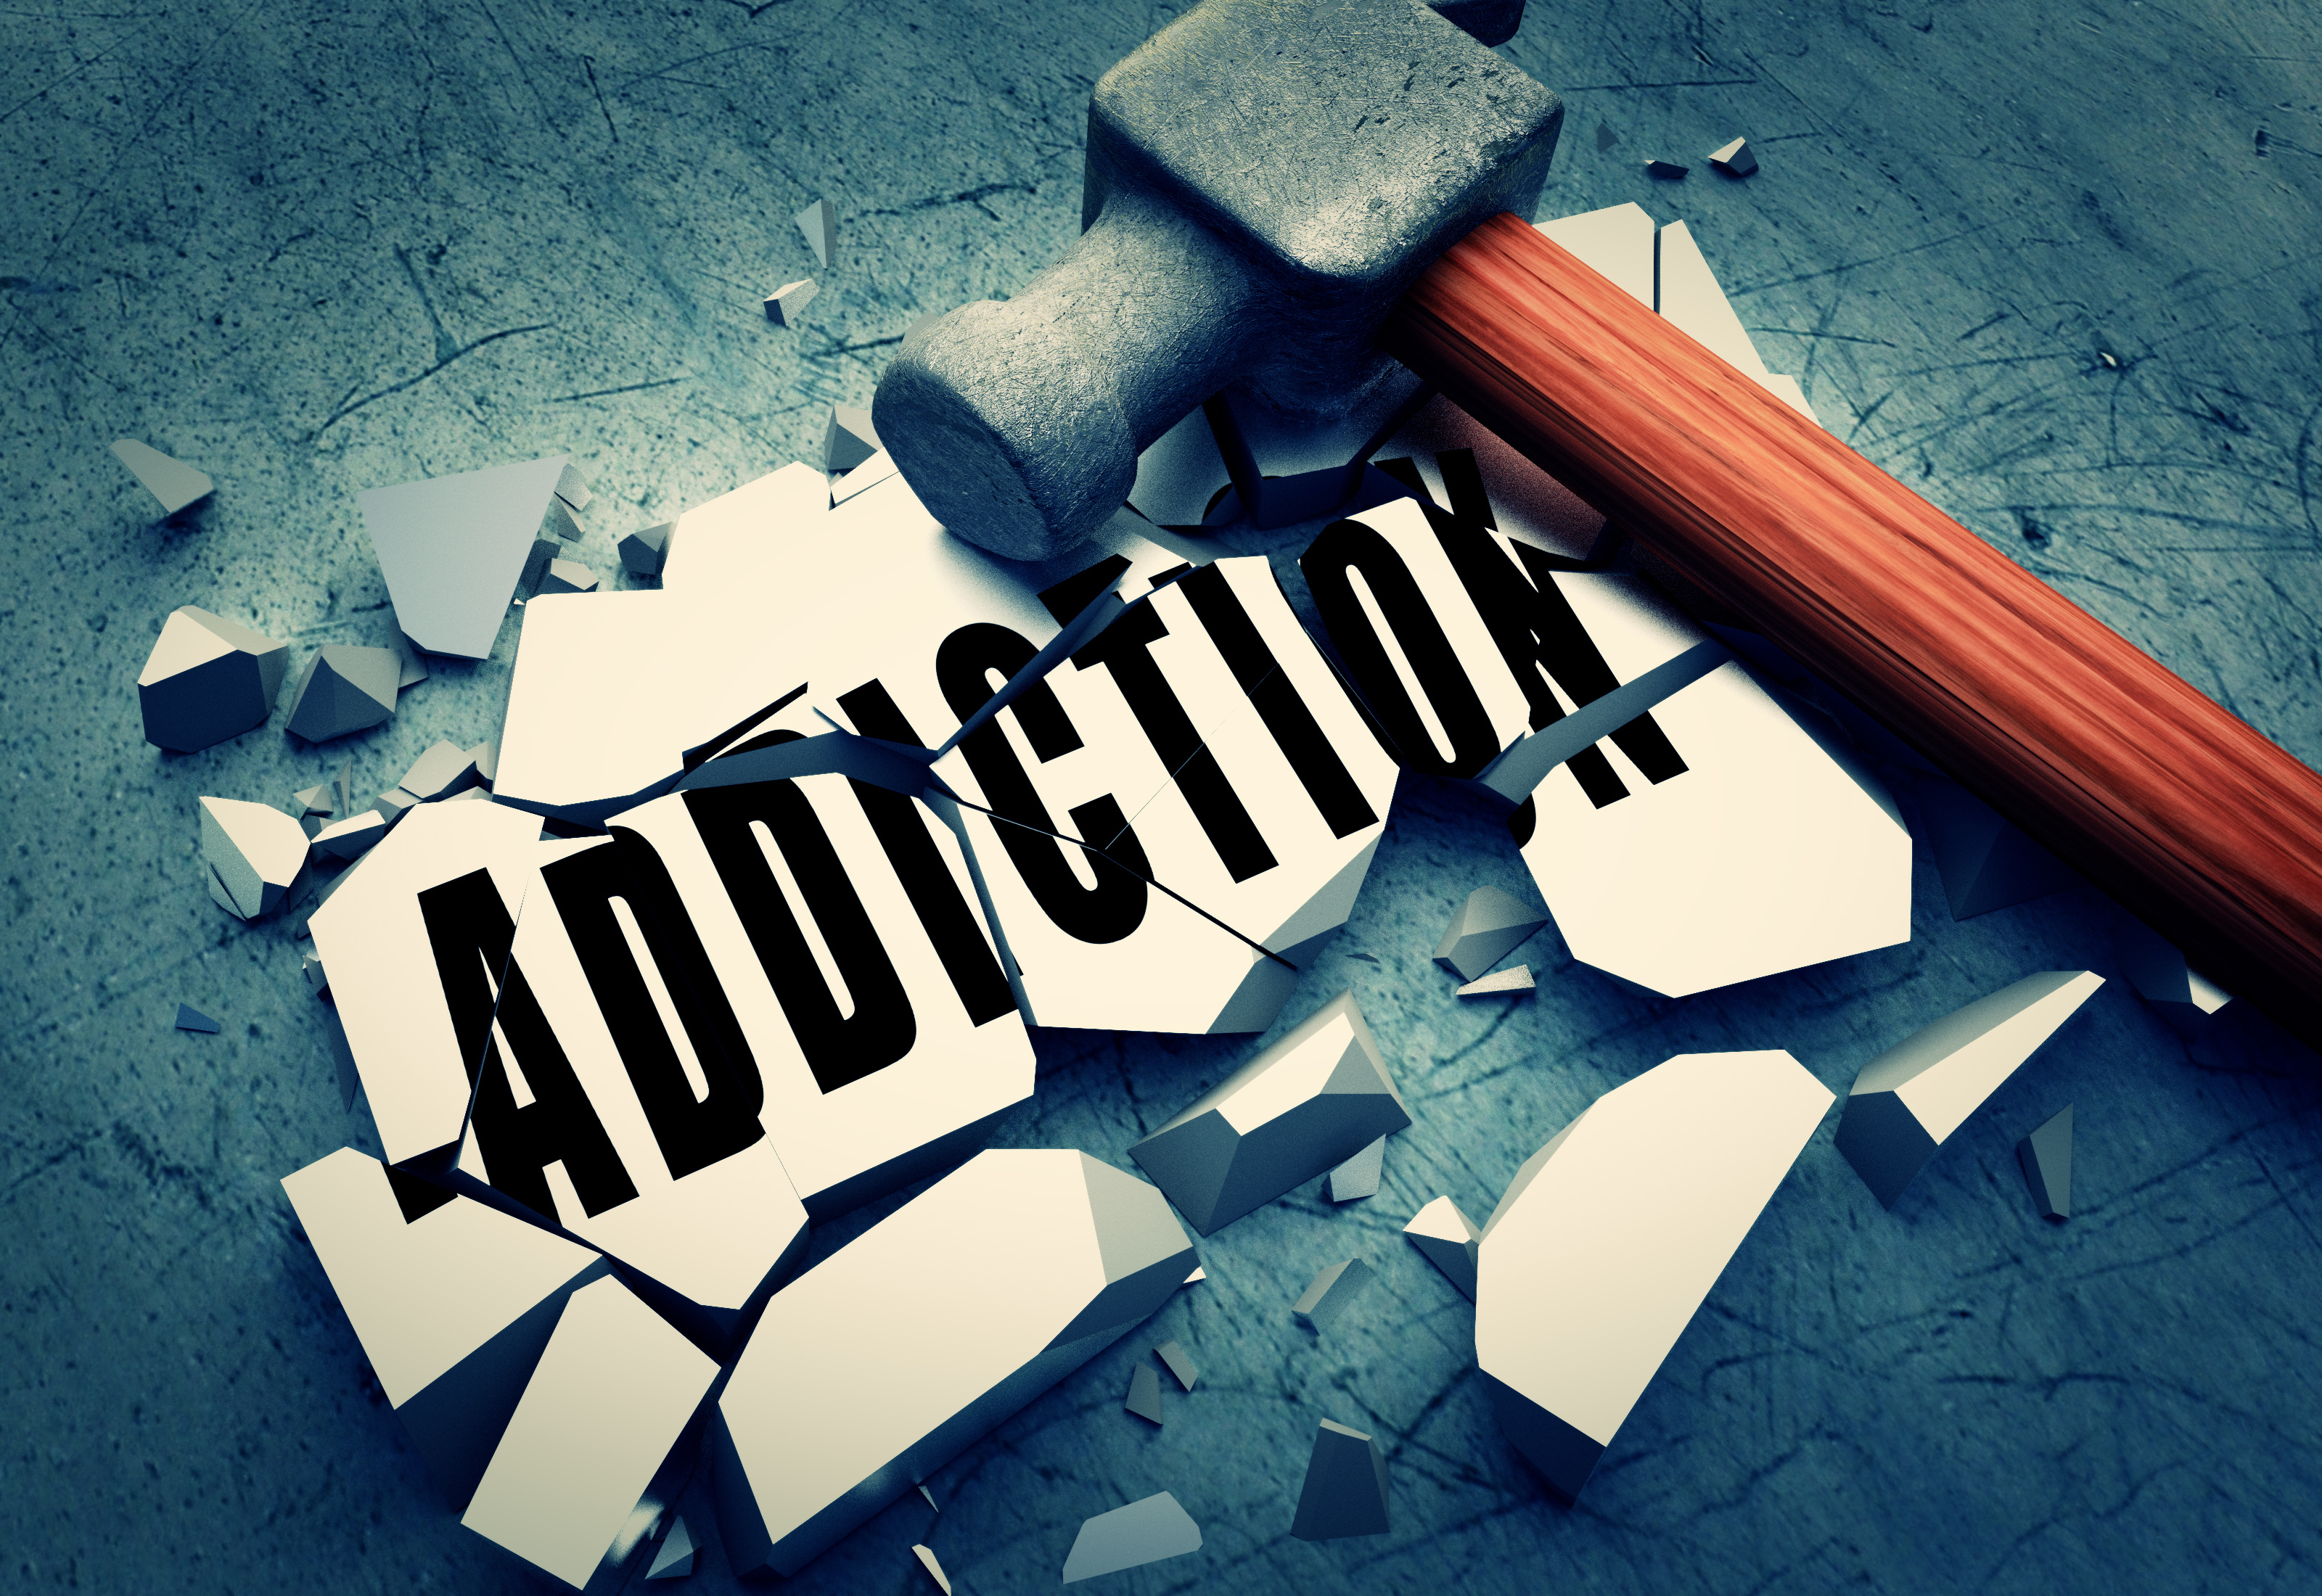 What I've Learned About Drug Addiction